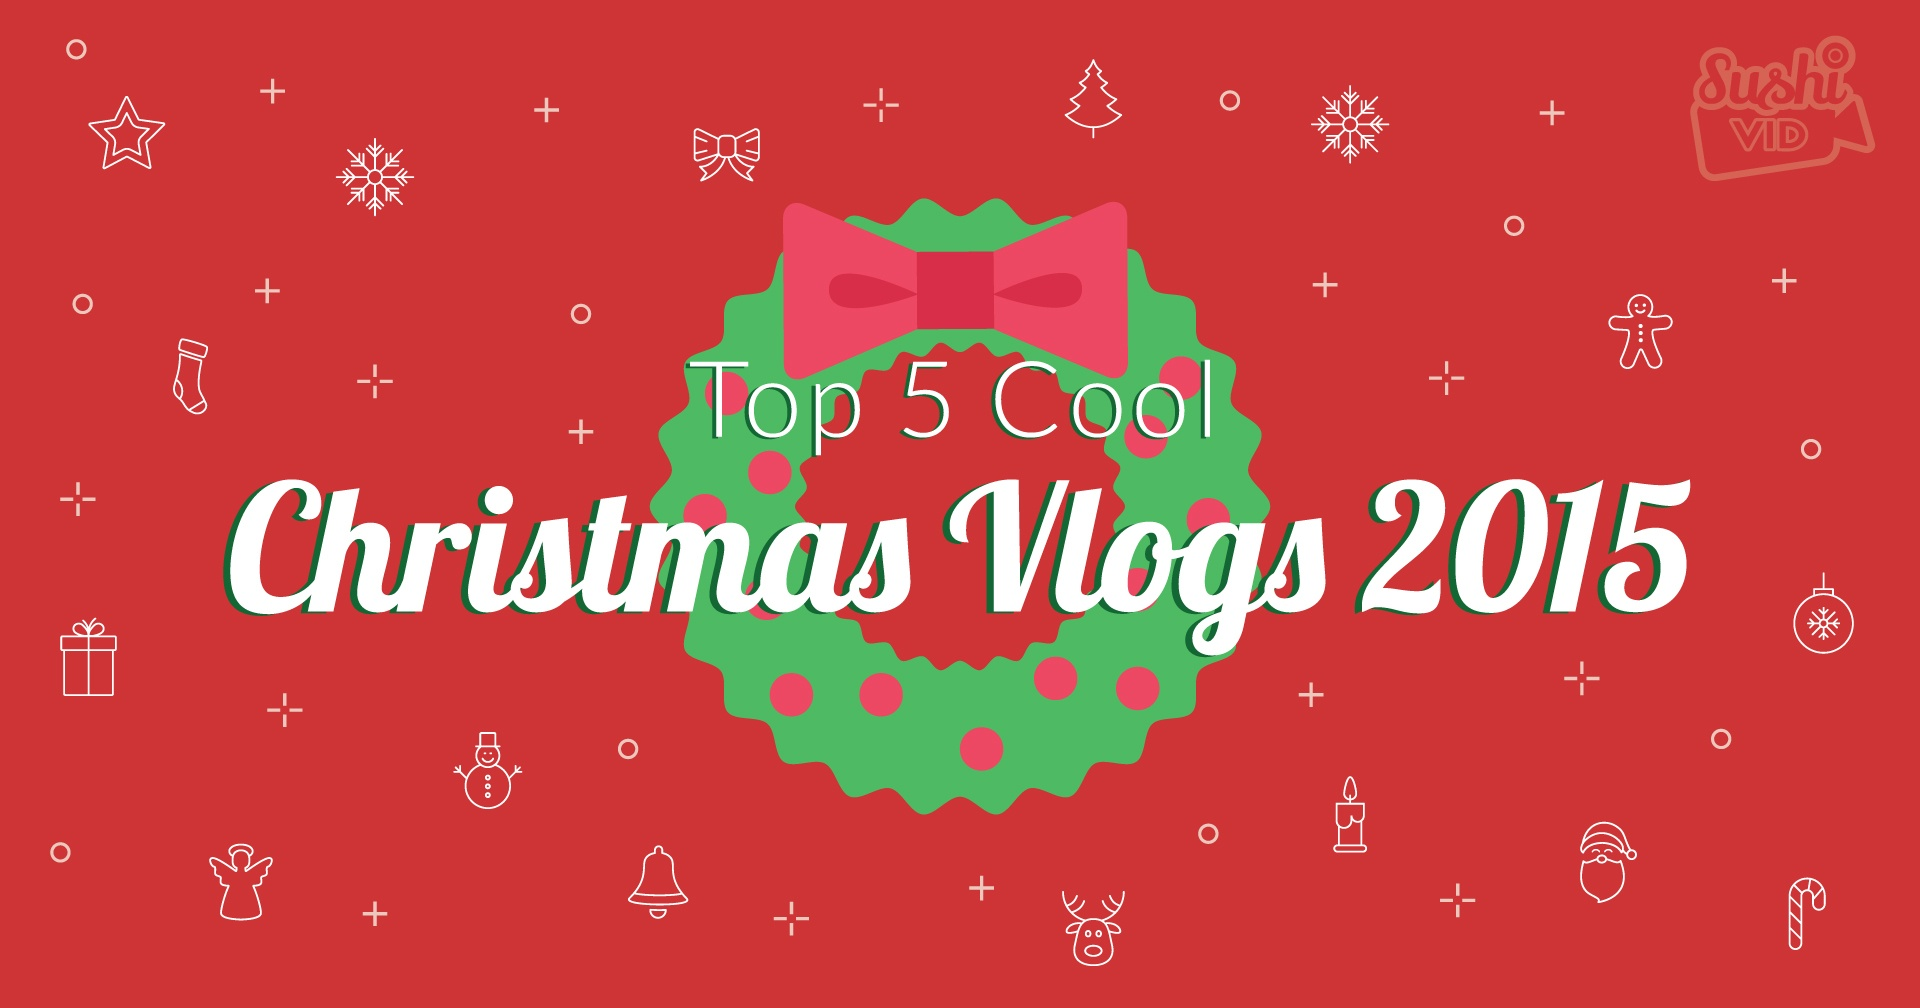 20151216 20  20top 205 20cool 20christmas 20vlogs 202015 20  20influencer 20marketing